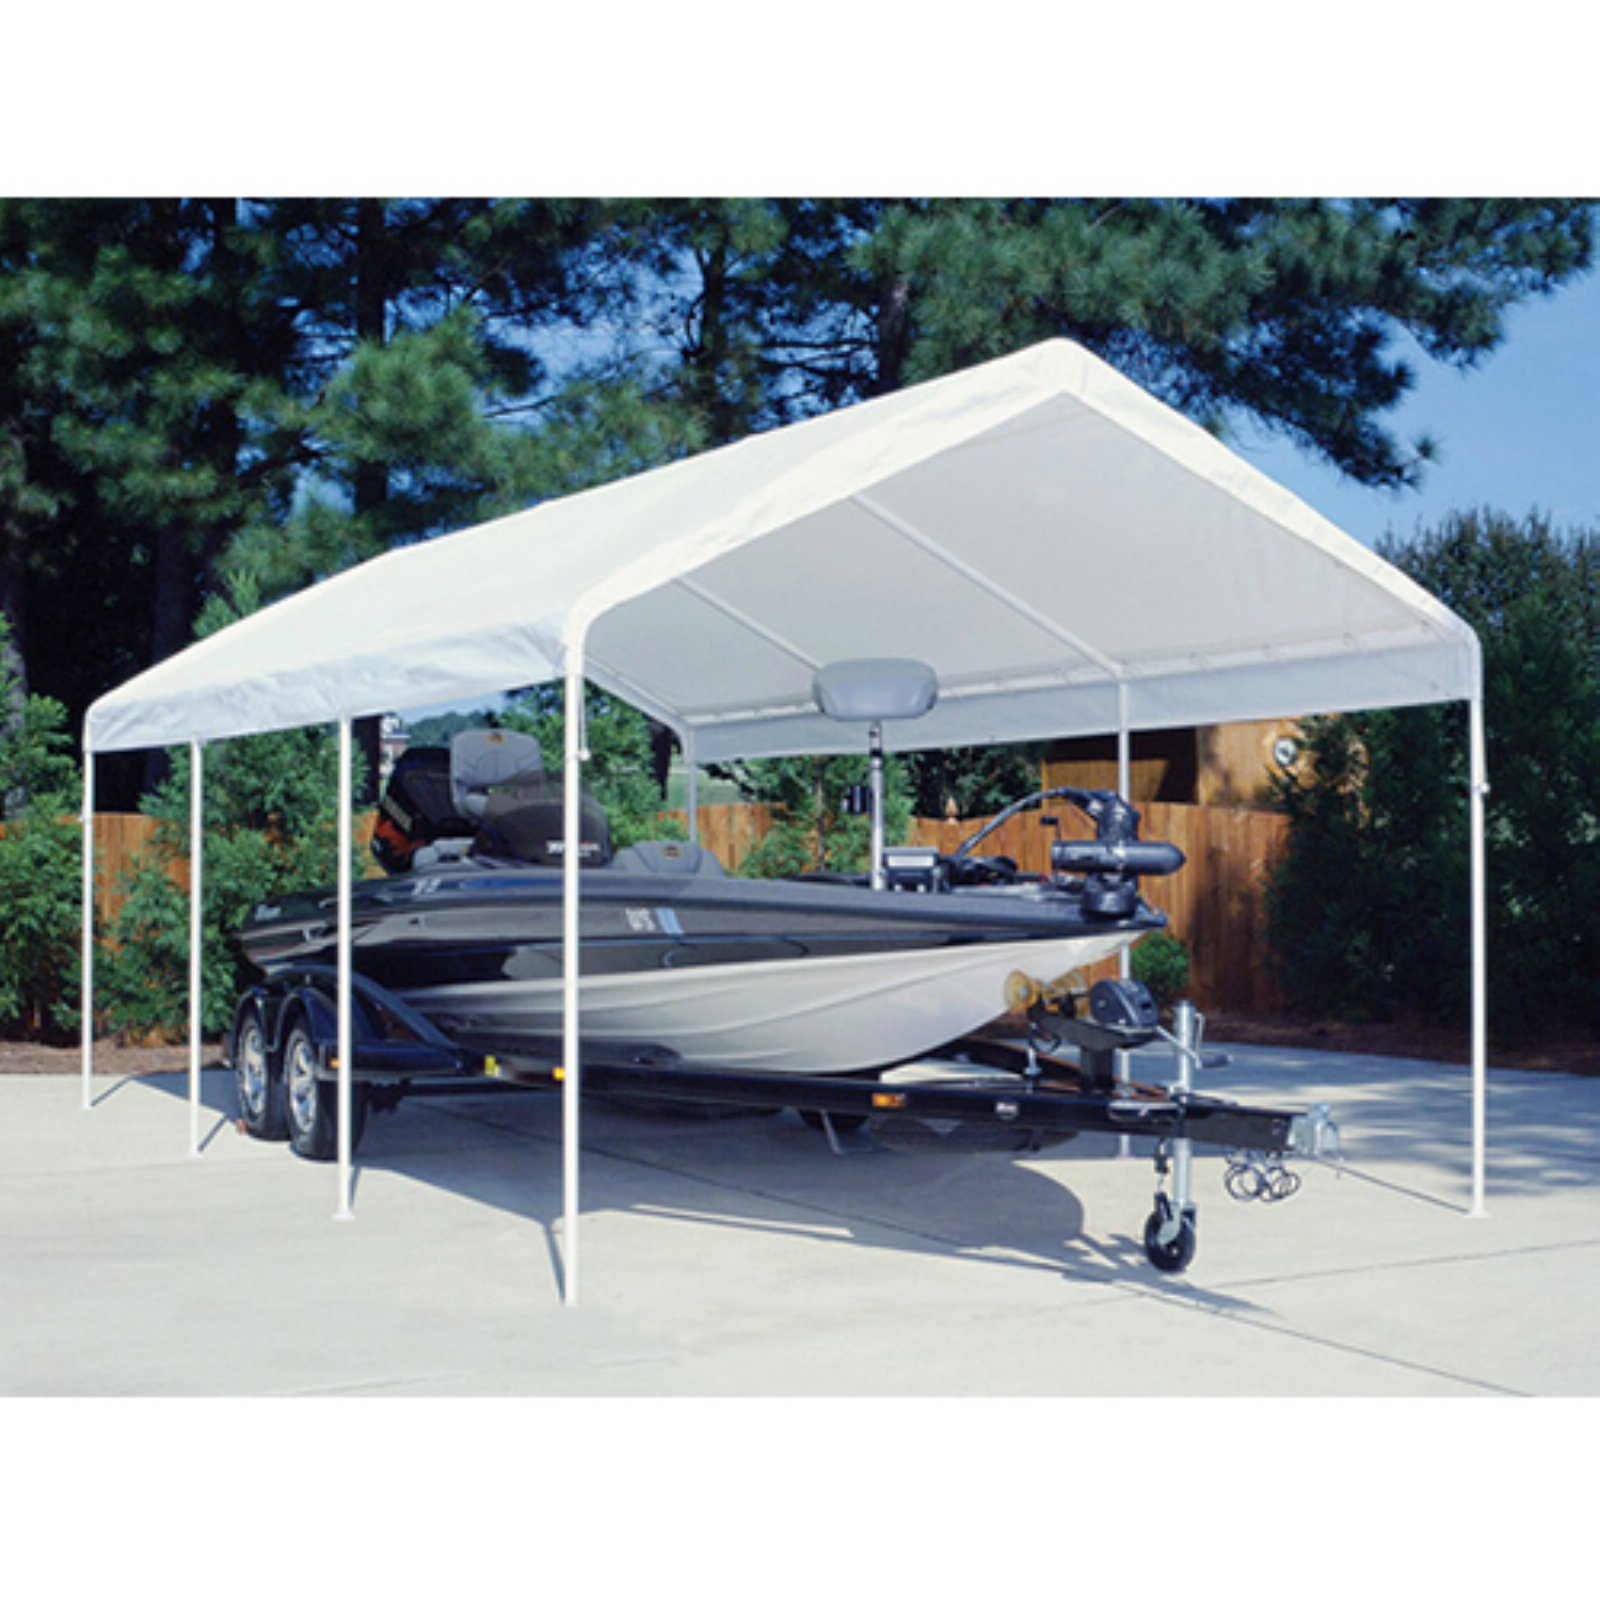 King Canopy 12 x 20 ft. Drawsting Carport Cover